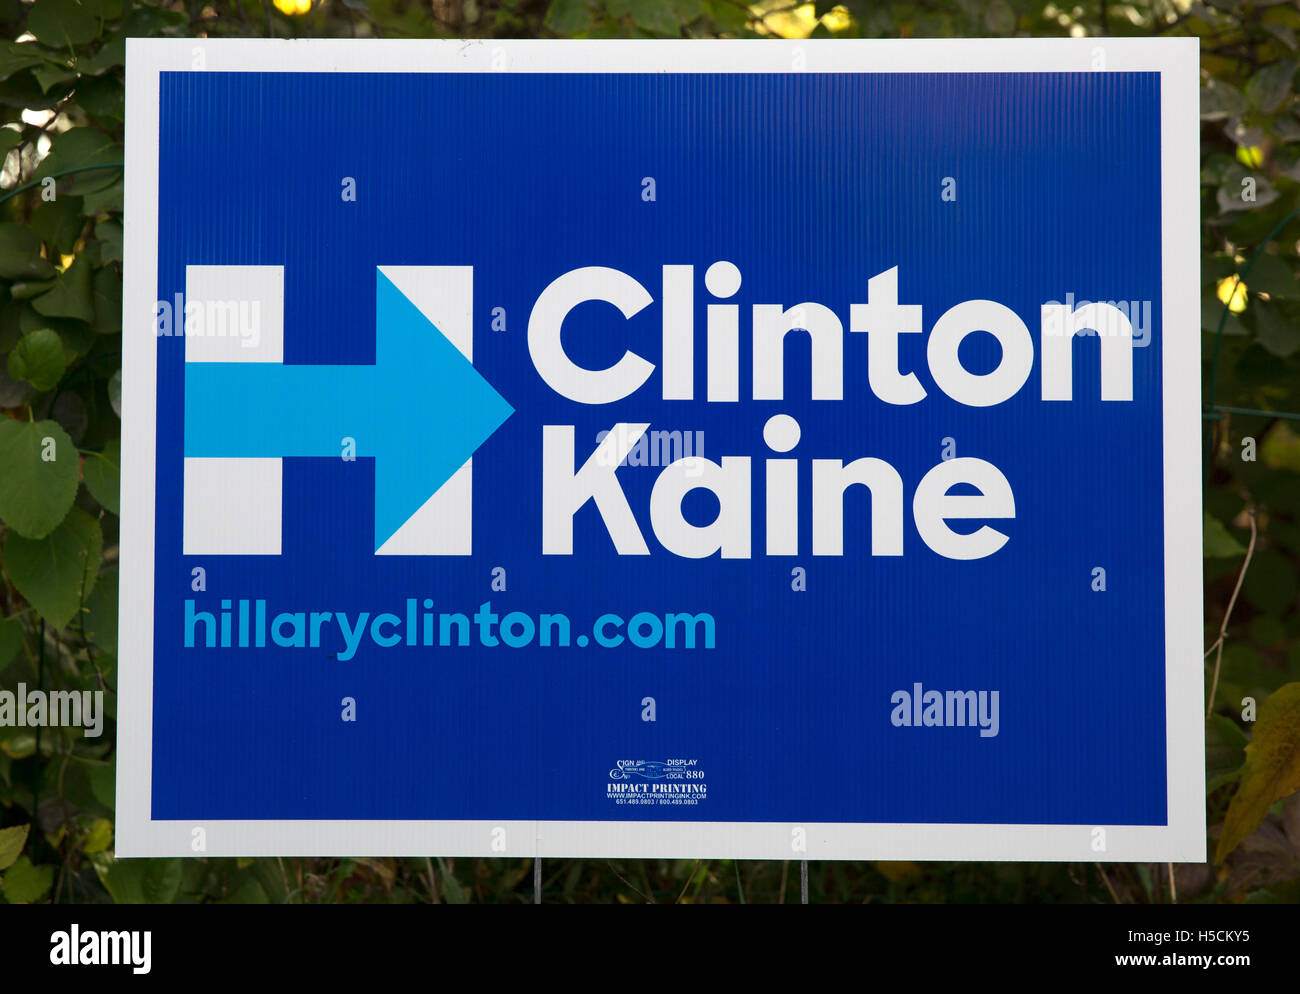 2016 US presidential campaign sign for democrats Hillary Clinton and Tim Kaine - Stock Image